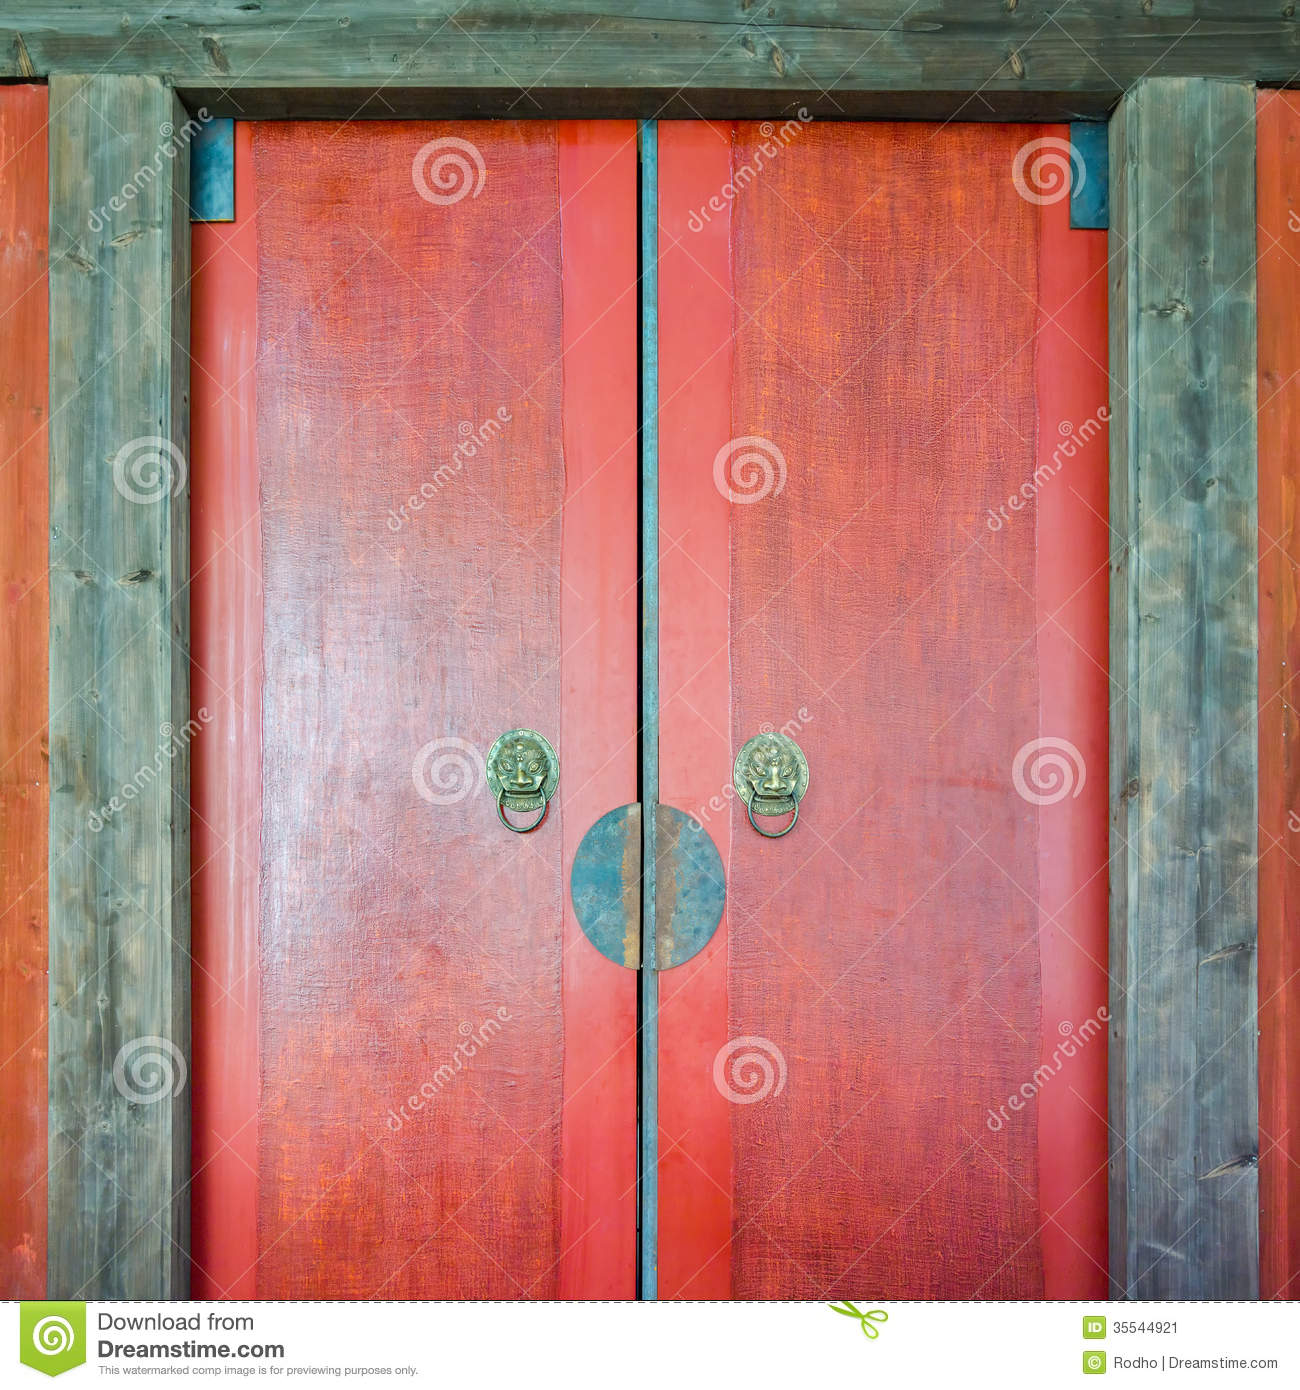 Traditional Chinese Wooden Door Stock Image - Image: 35544921